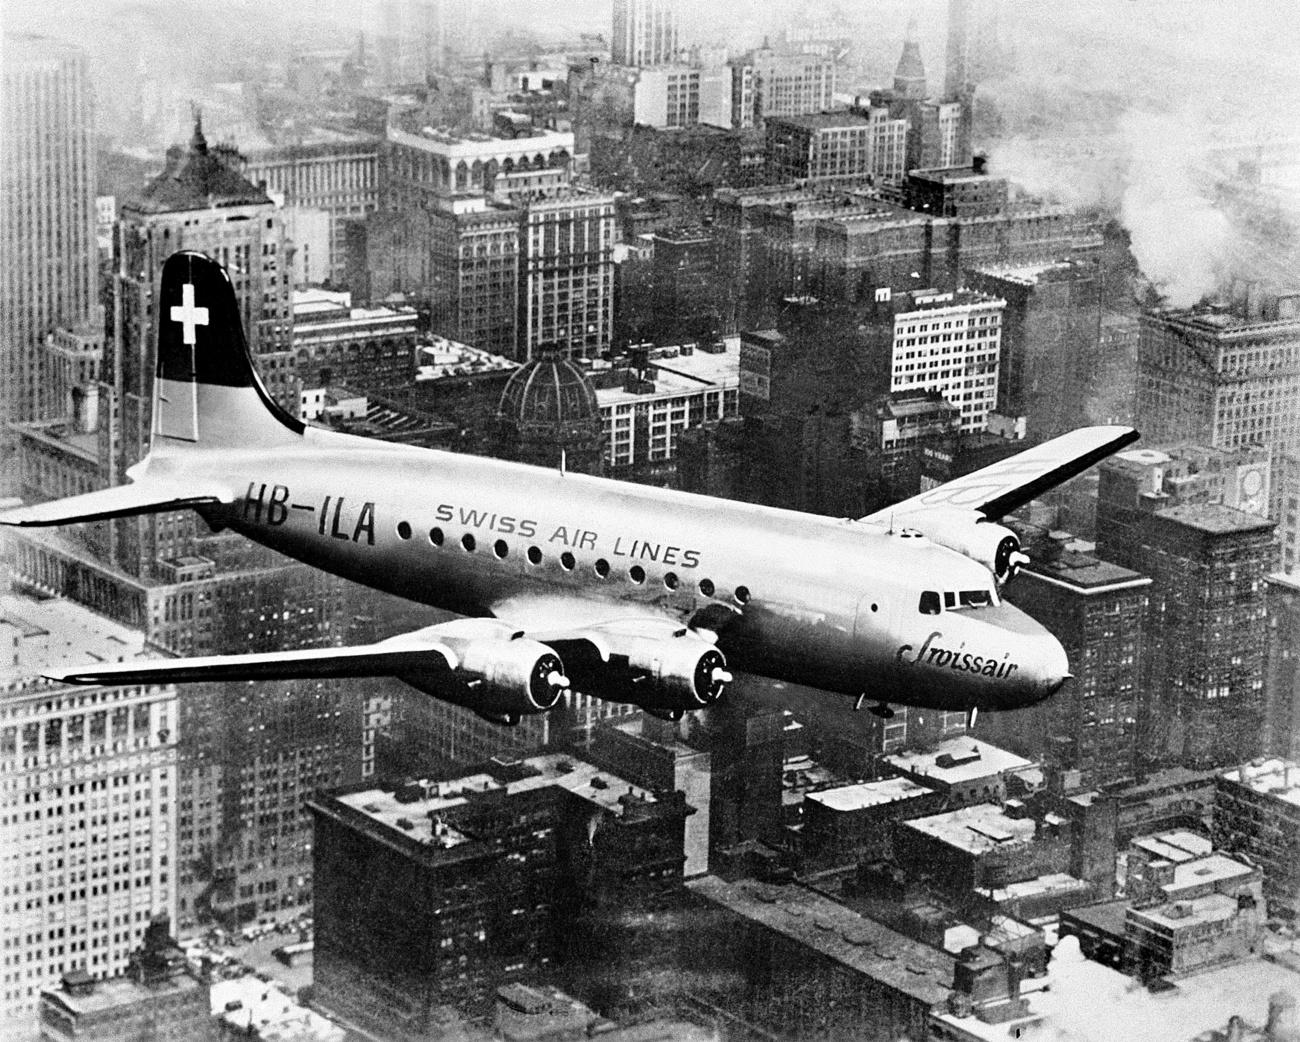 A DC-4 Swissair plane on a non-stop flight from New York to Geneva.